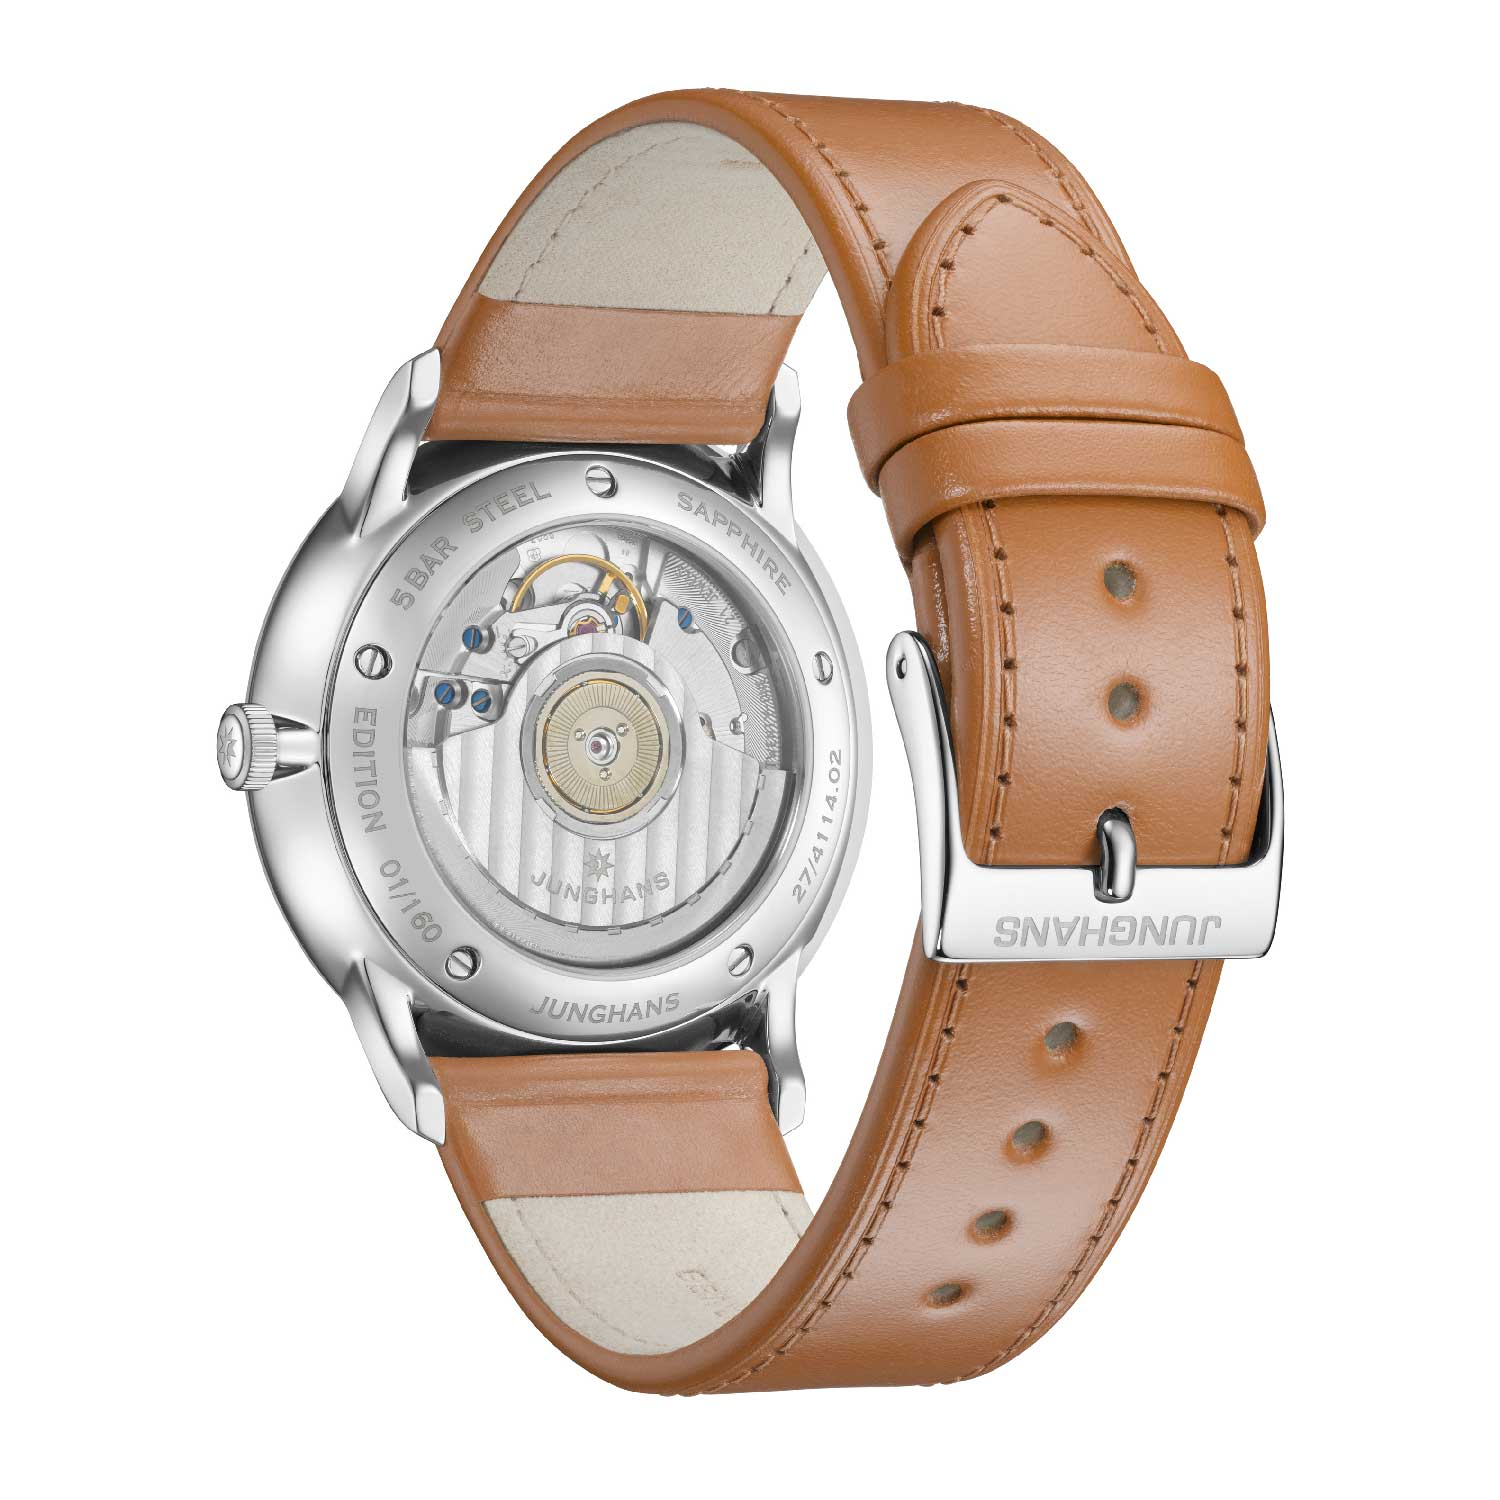 The Caliber J810.2 is a self-winding movement with a three-positional crown for winding, setting the date and setting the time.